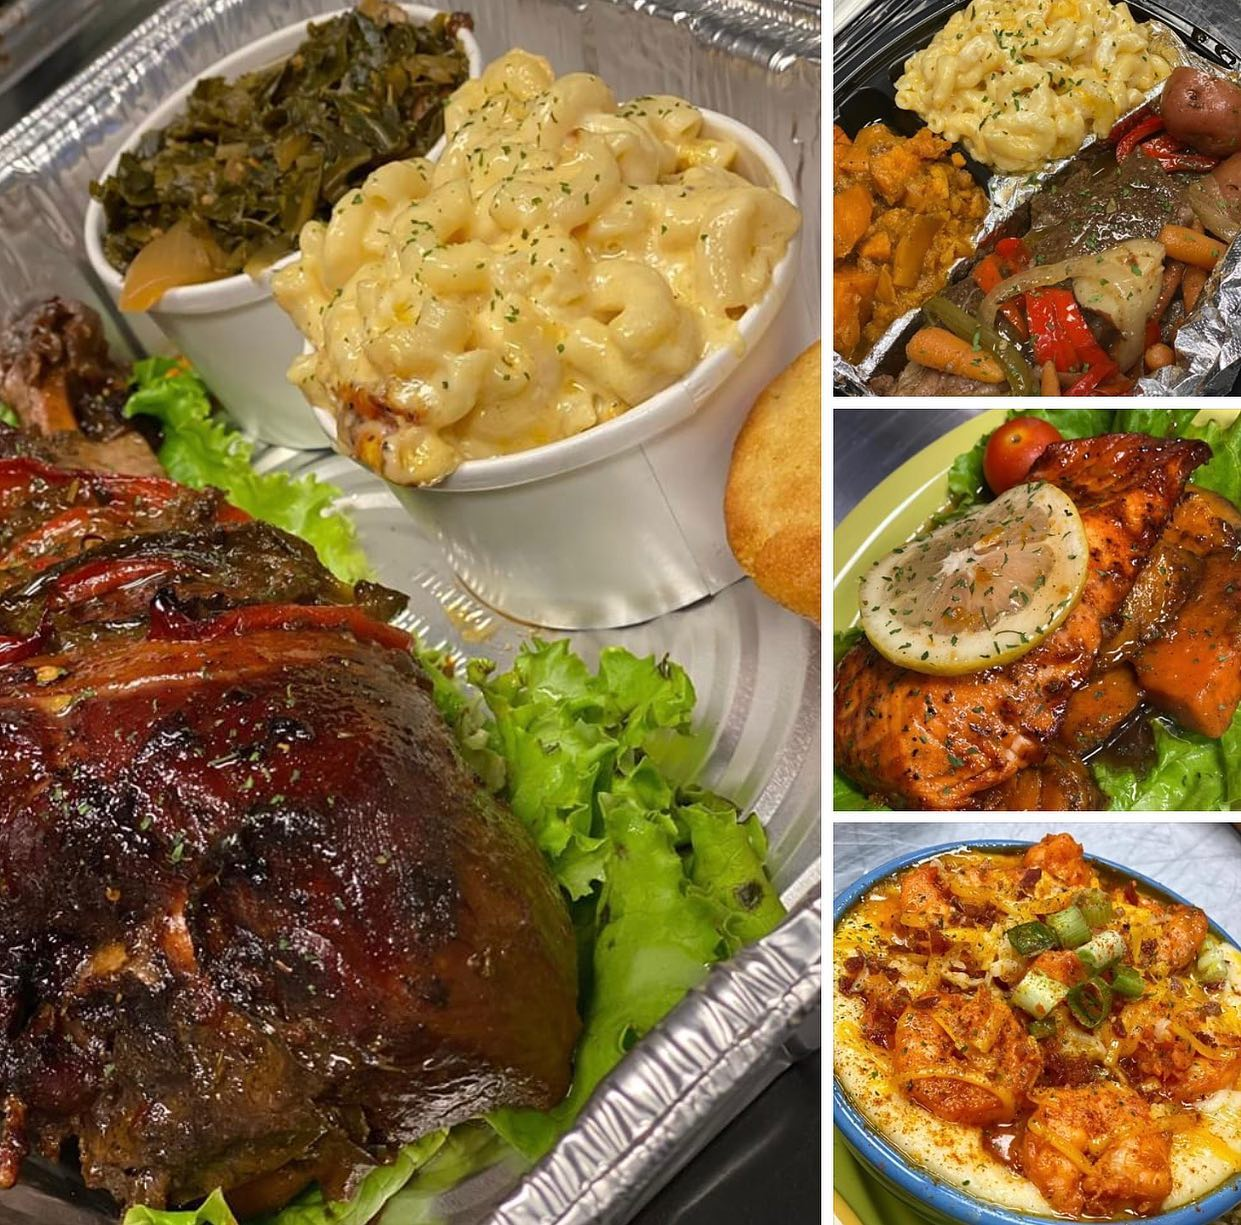 A compilation of some food from Chicago Food on the Run: Turkey legs, beef short ribs, sweet potatoes, glazed salmon, shrimp and grits